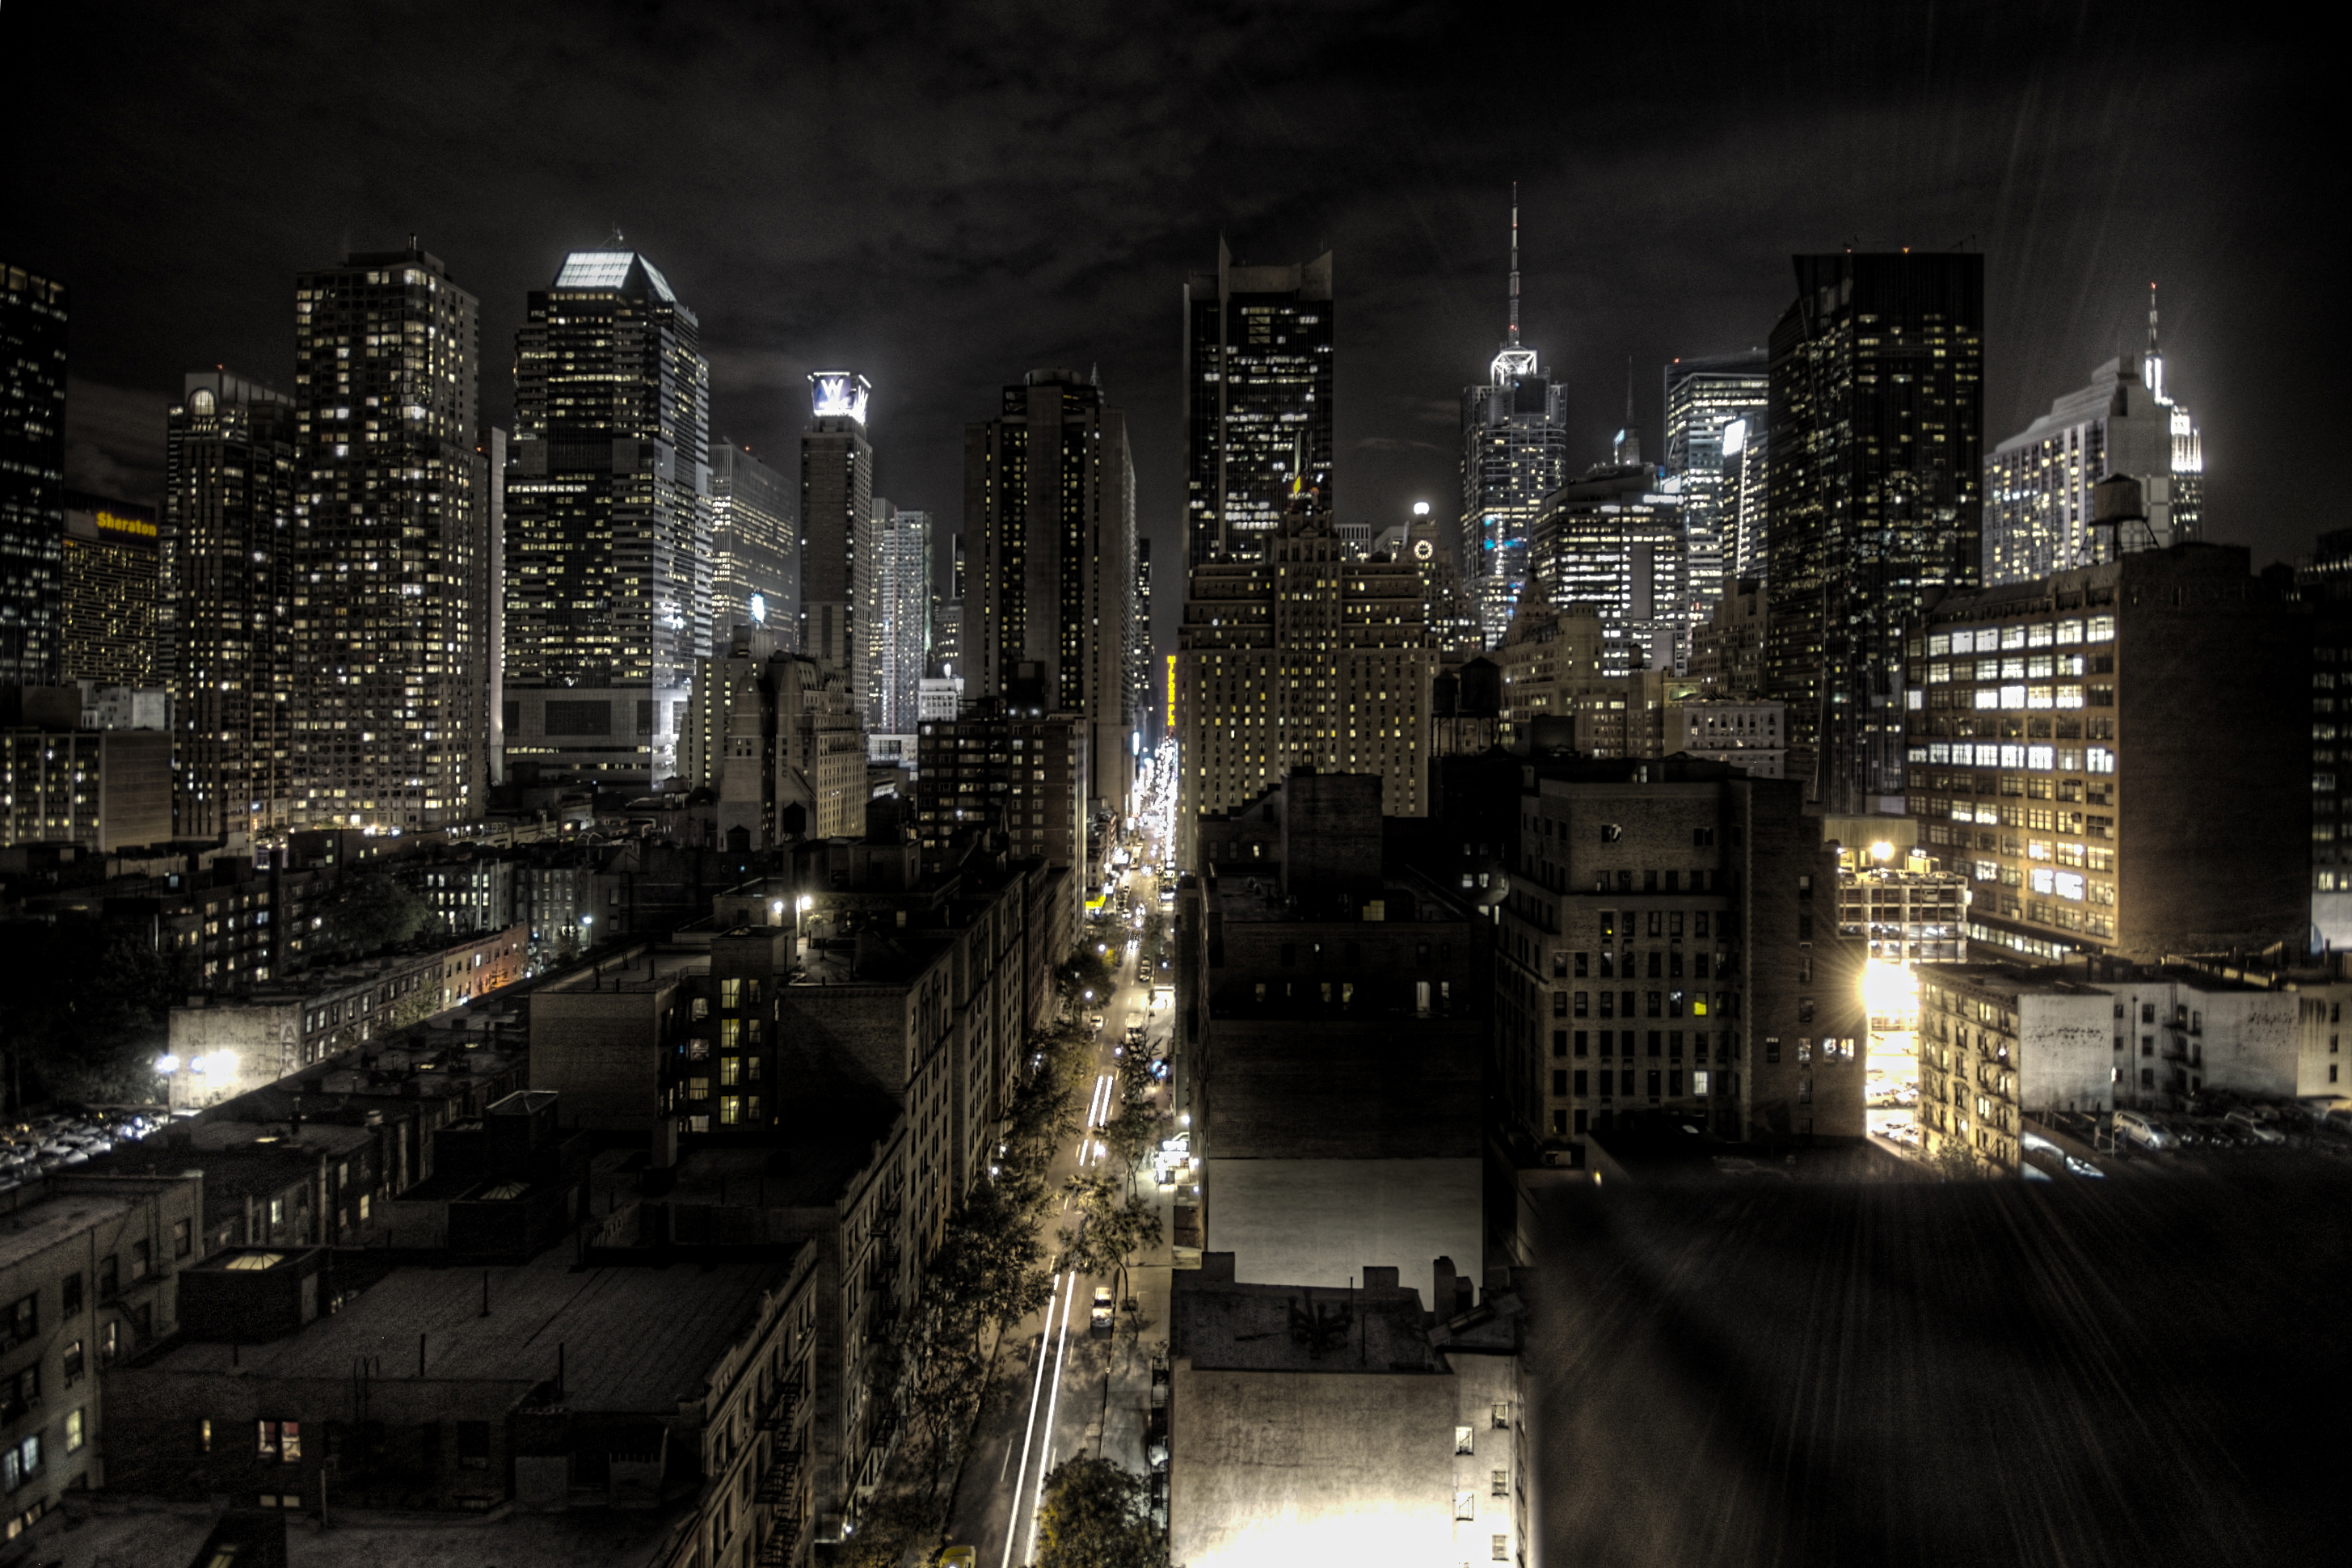 Tanım new york city at night hdr edit1